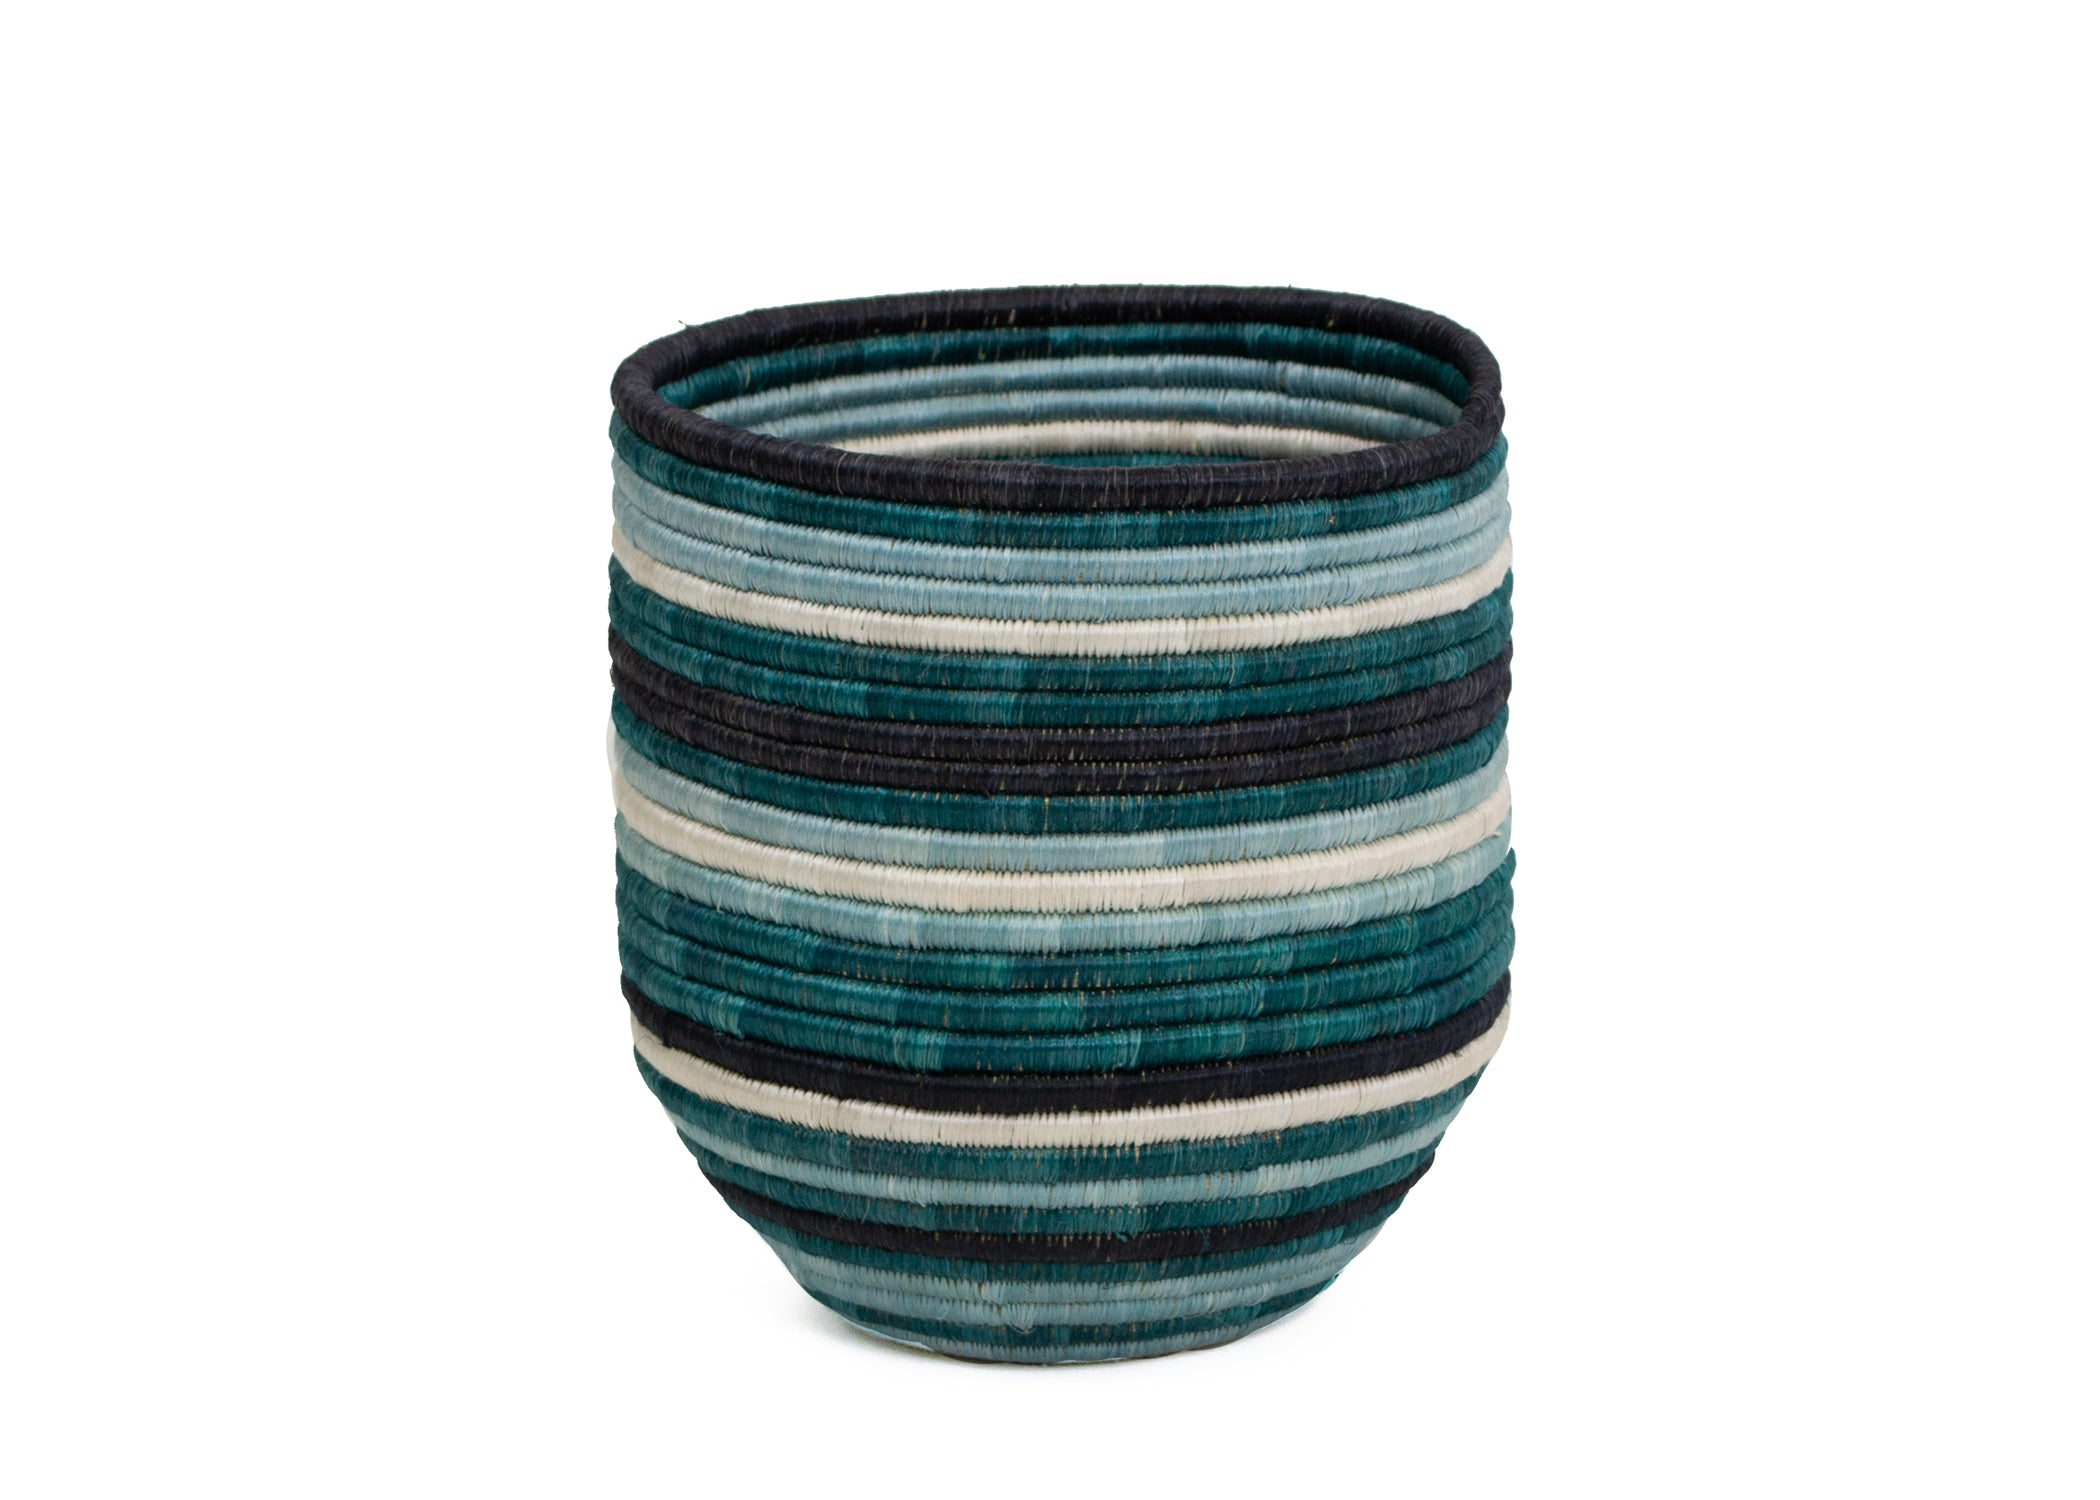 Teal + Black Striped Dunia Vase - KAZI - Artisan made high quality home decor and wall art